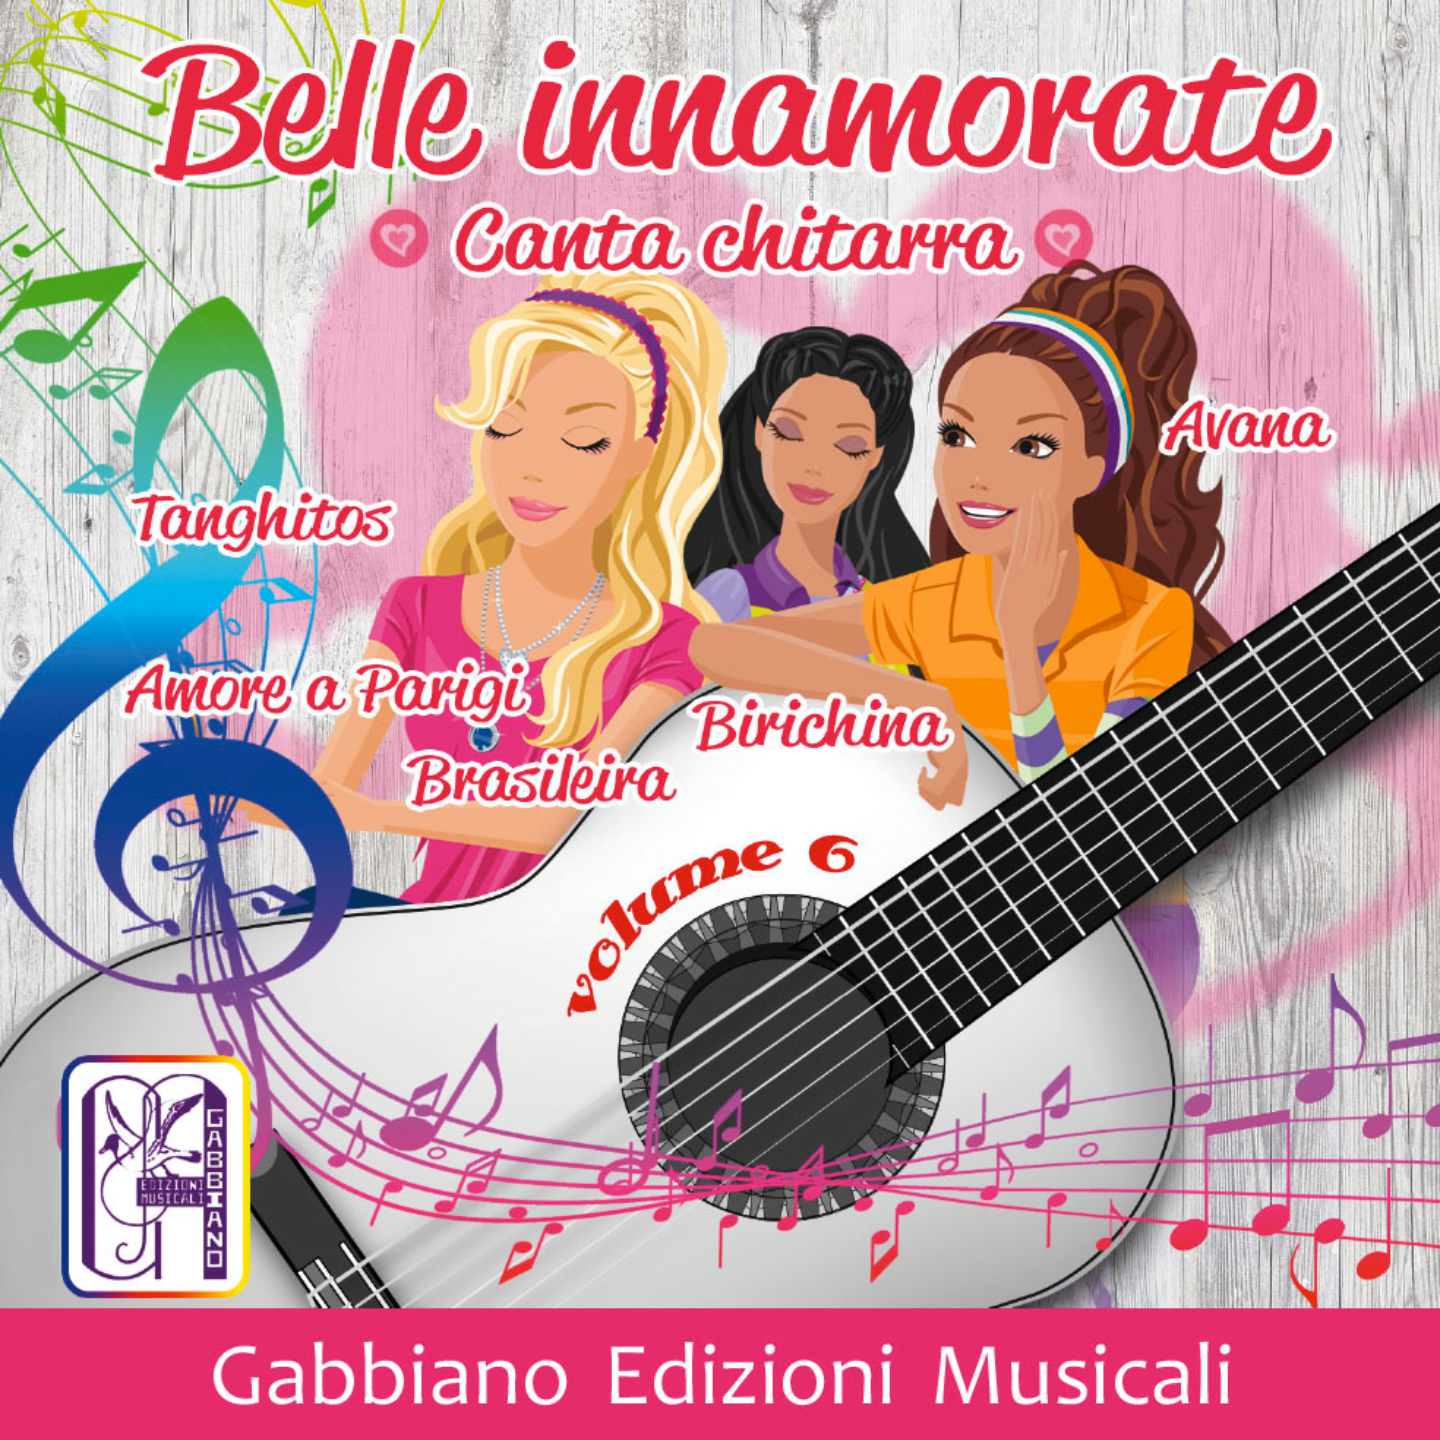 GBN006CD/CL - Belle innamorate - Volume 6